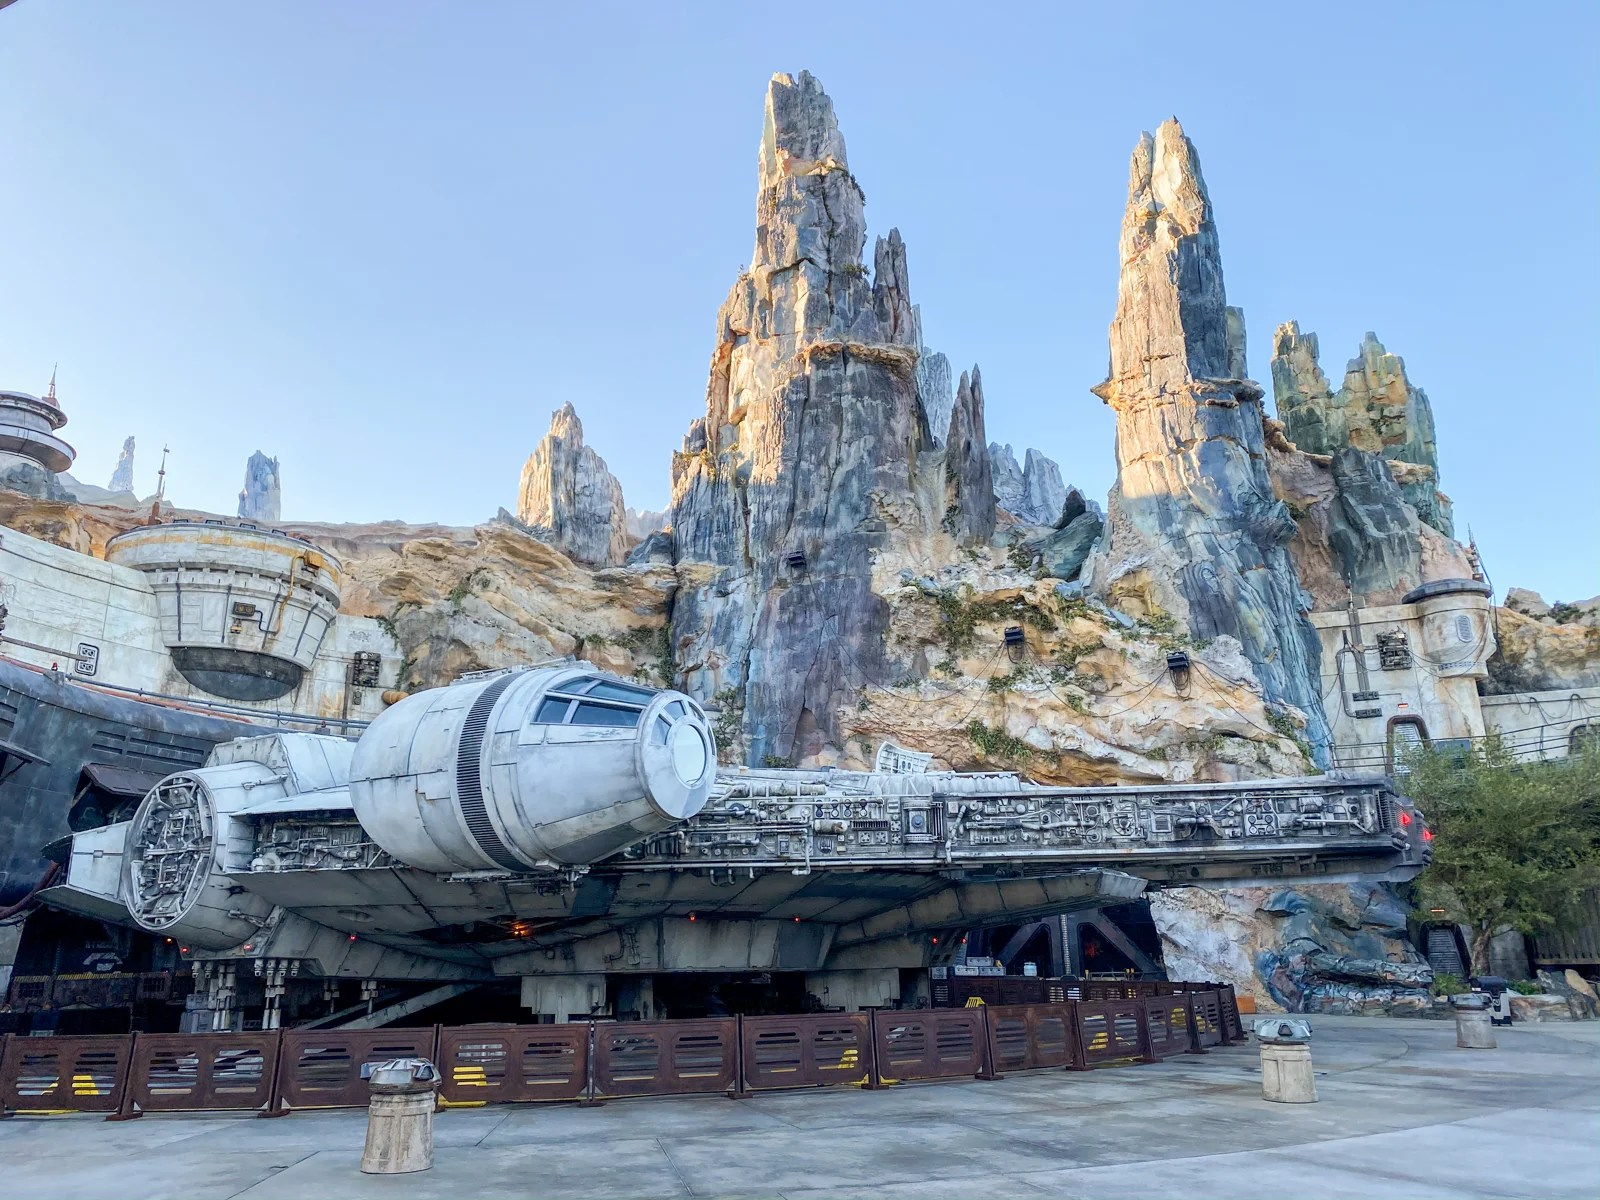 From FastPass+ to Falcon rides: All about Star Wars: Galaxy's Edge at Walt Disney World